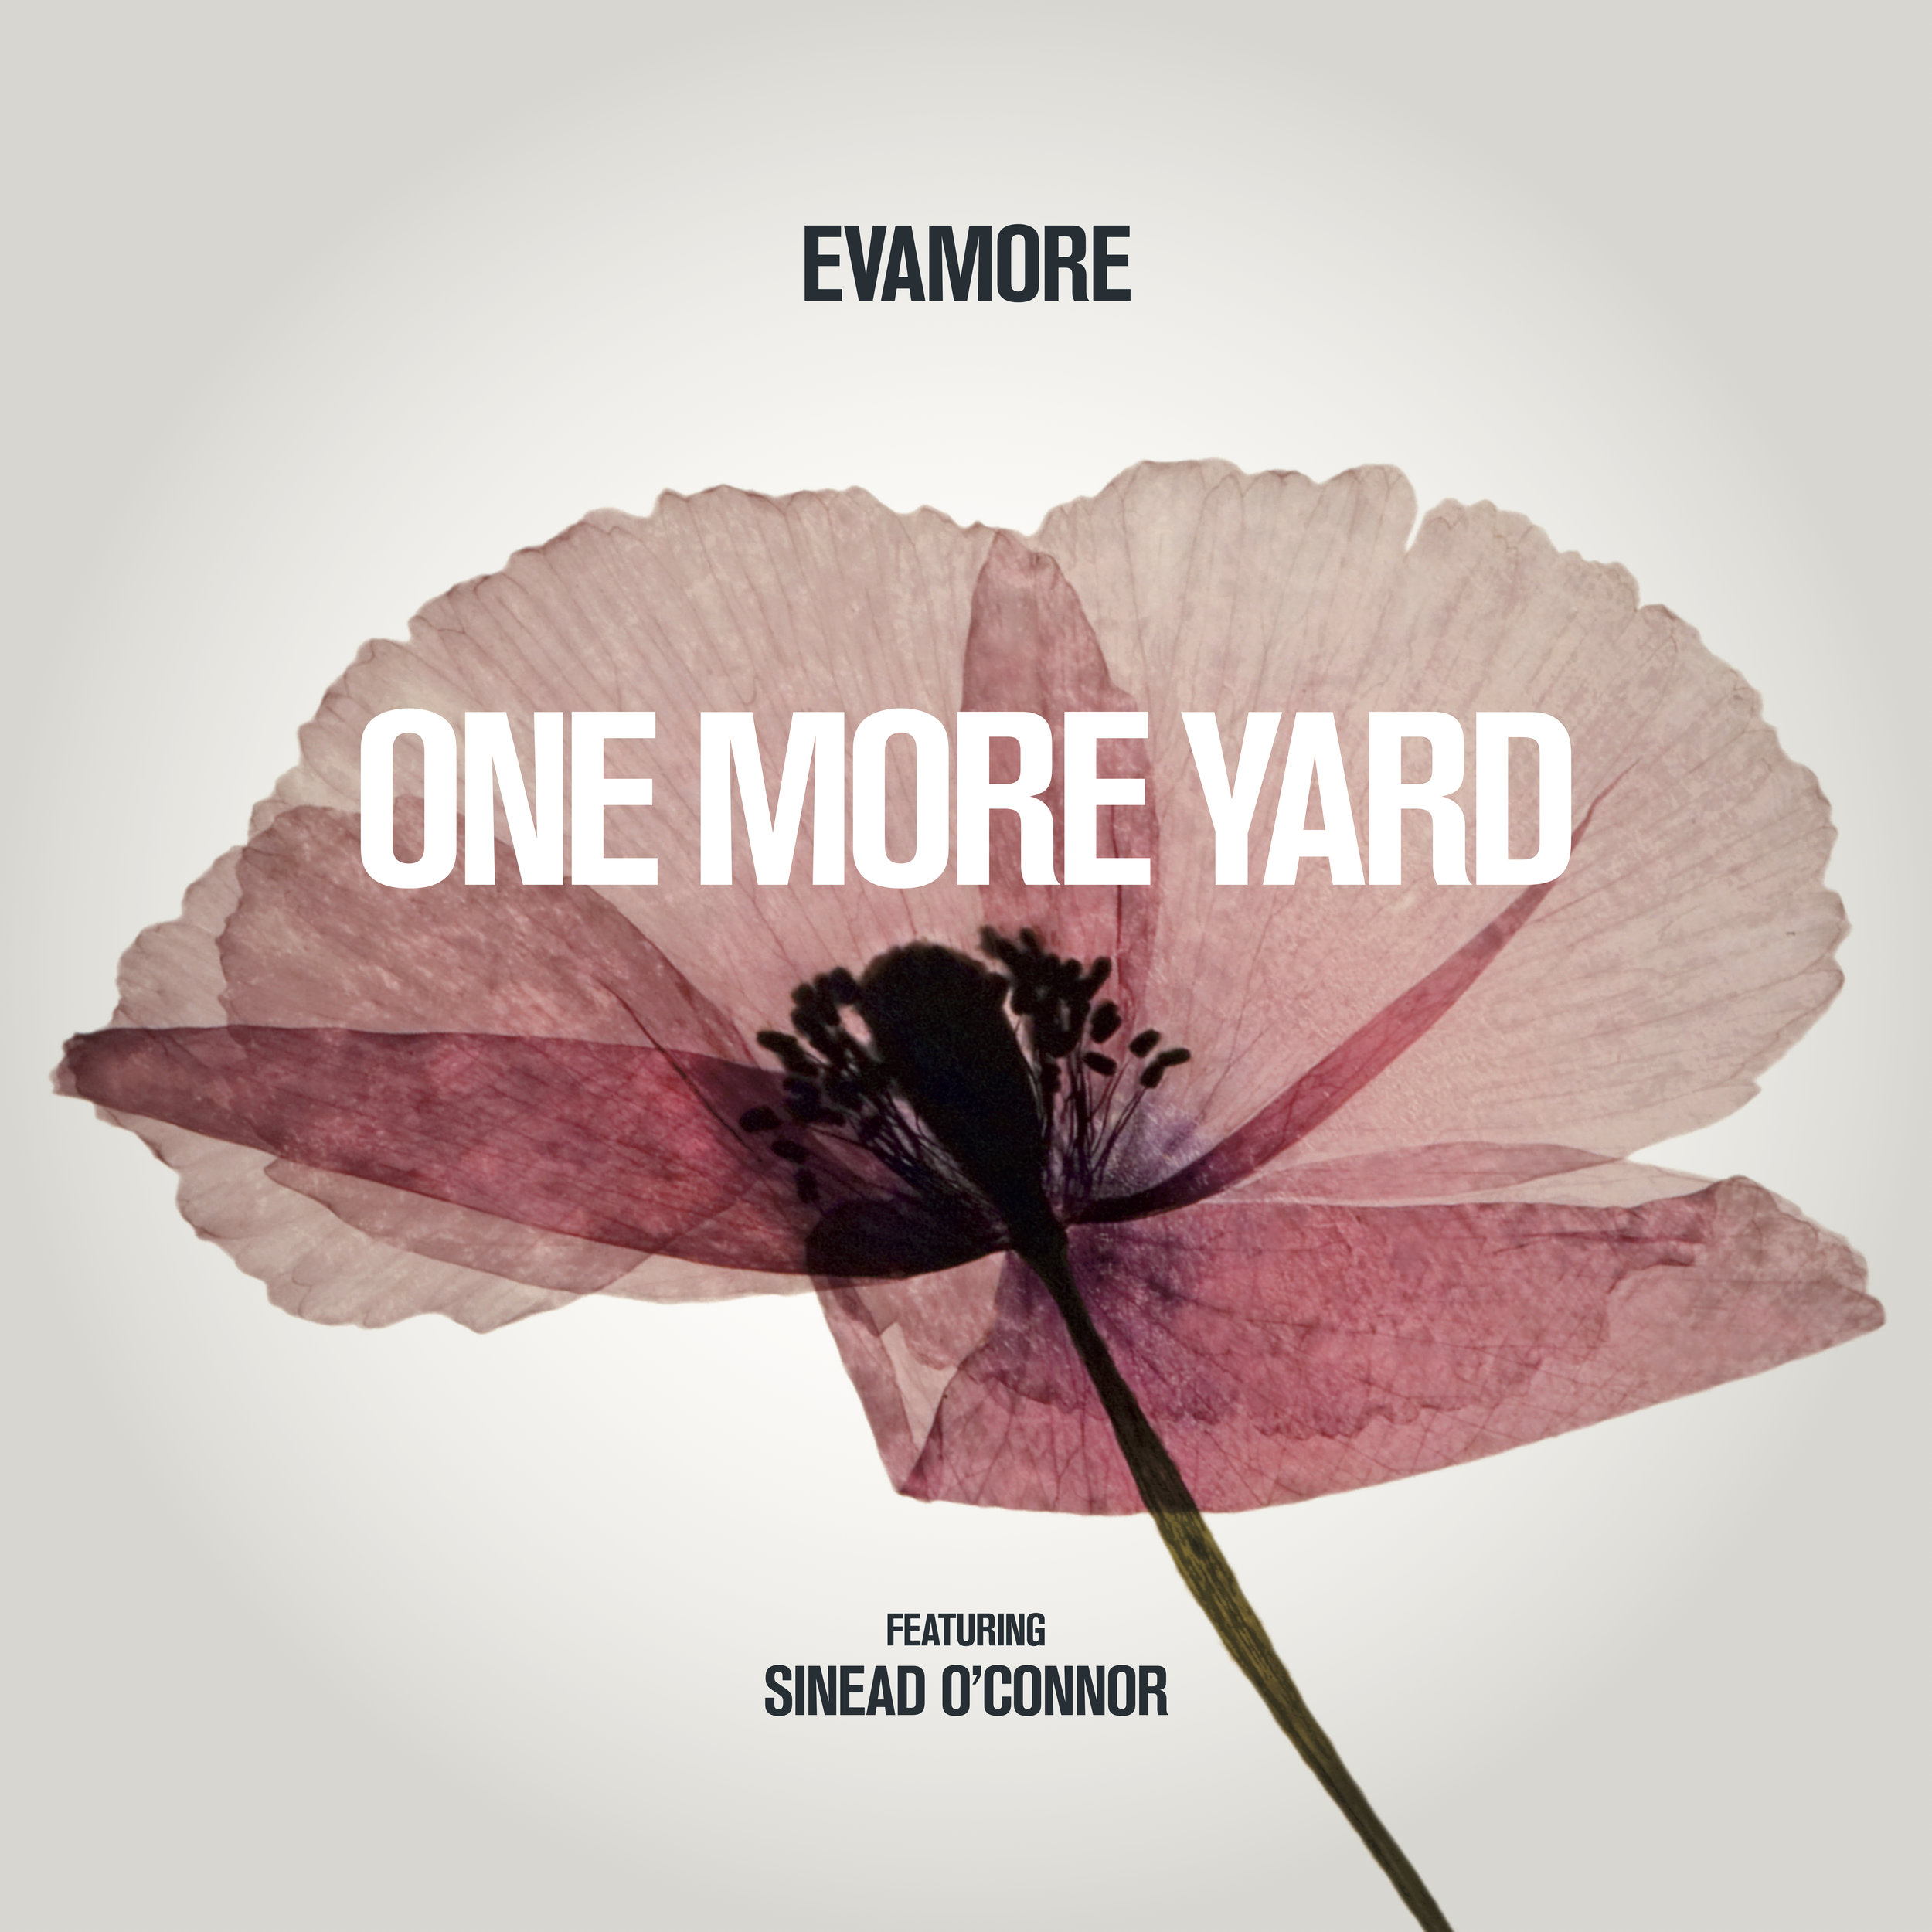 Evamore One Last Yard 7.1.jpg